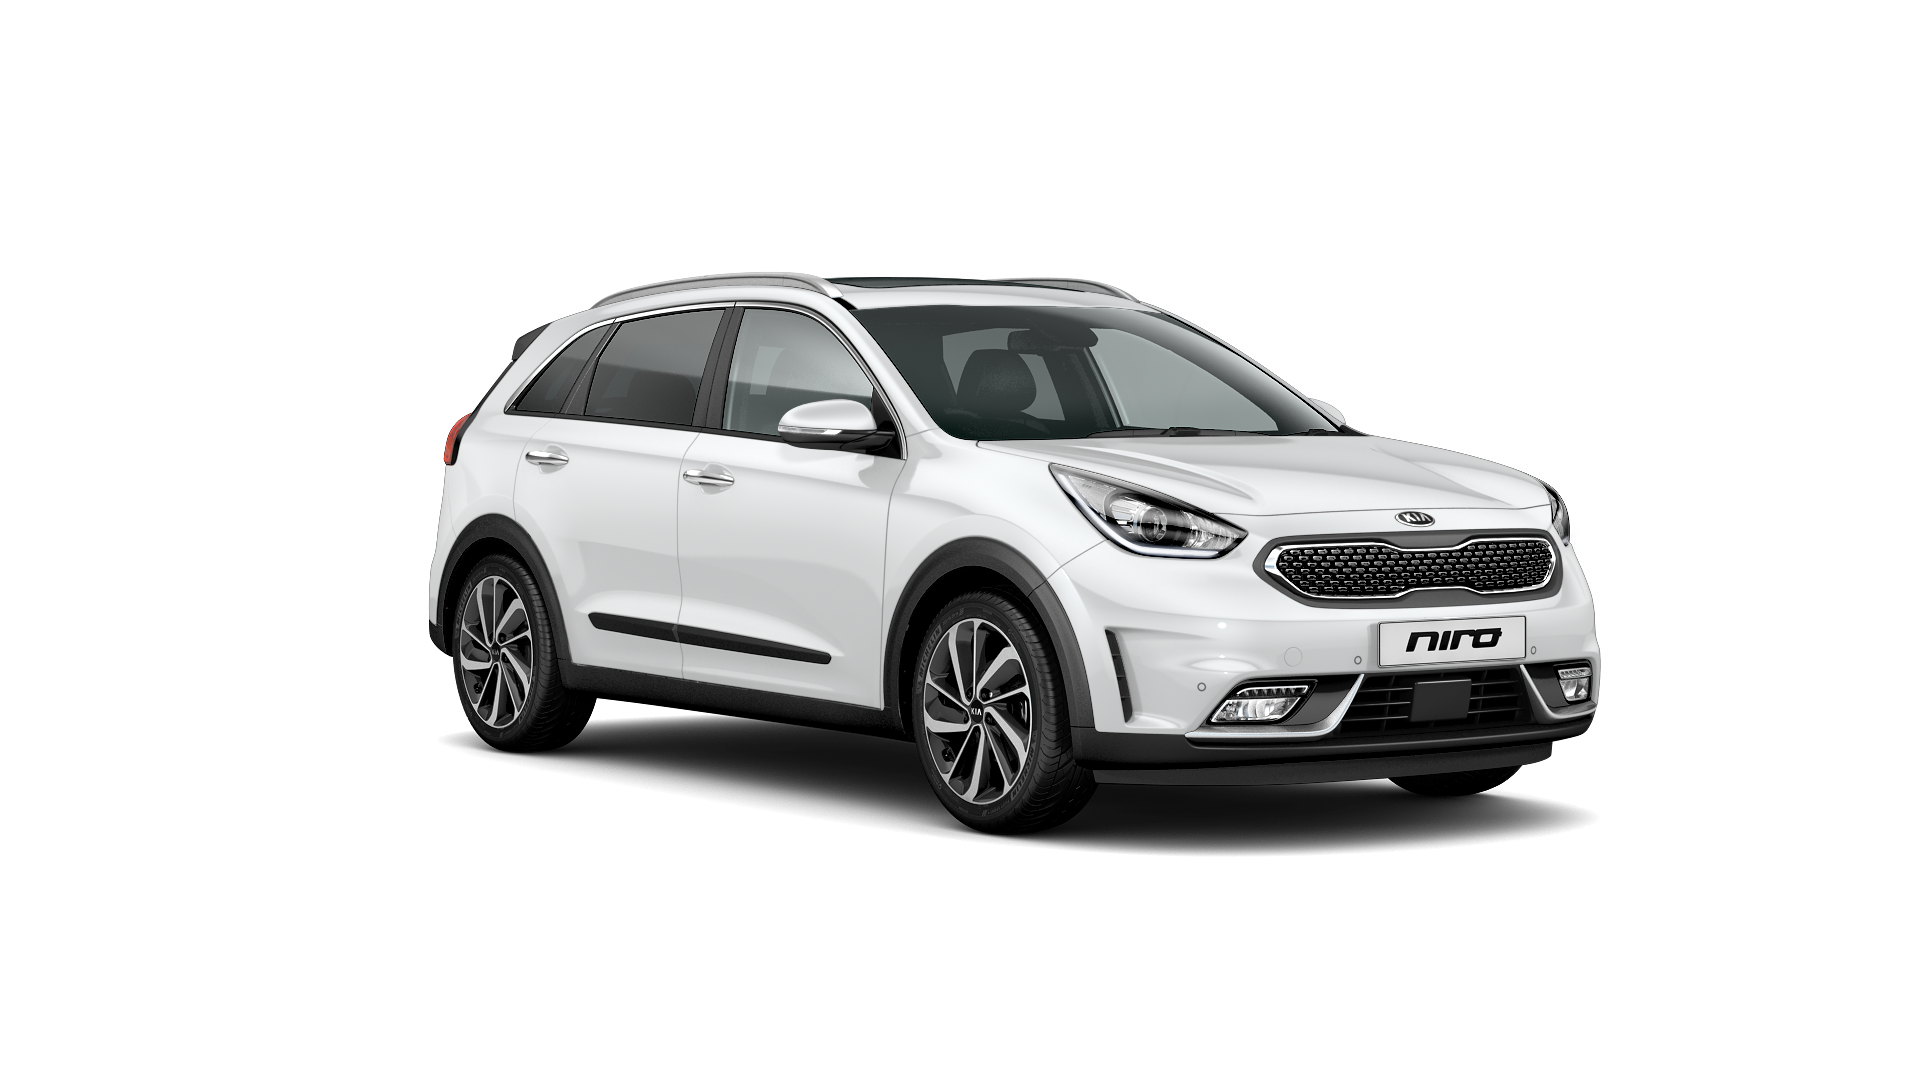 New kia niro cars for sale at downeys car dealer based in for Kia motor finance payoff